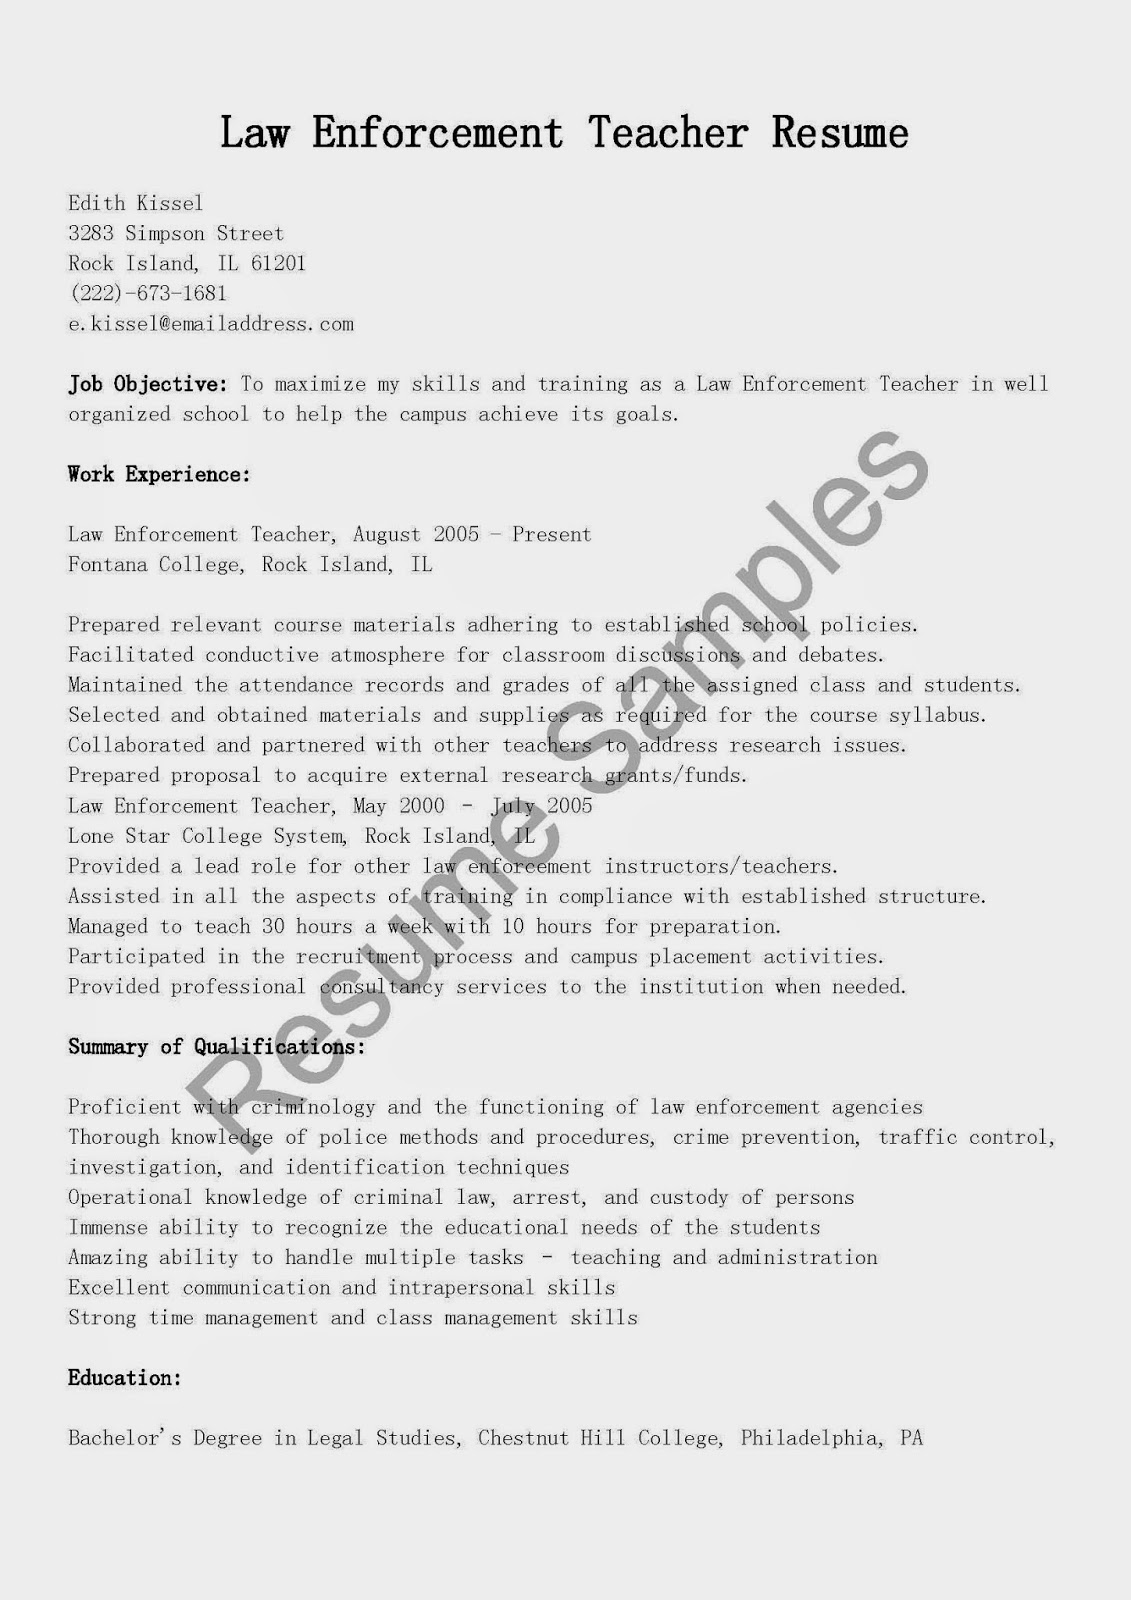 Law Enforcement Resume Objective Resume Samples Law Enforcement Teacher Resume Sample